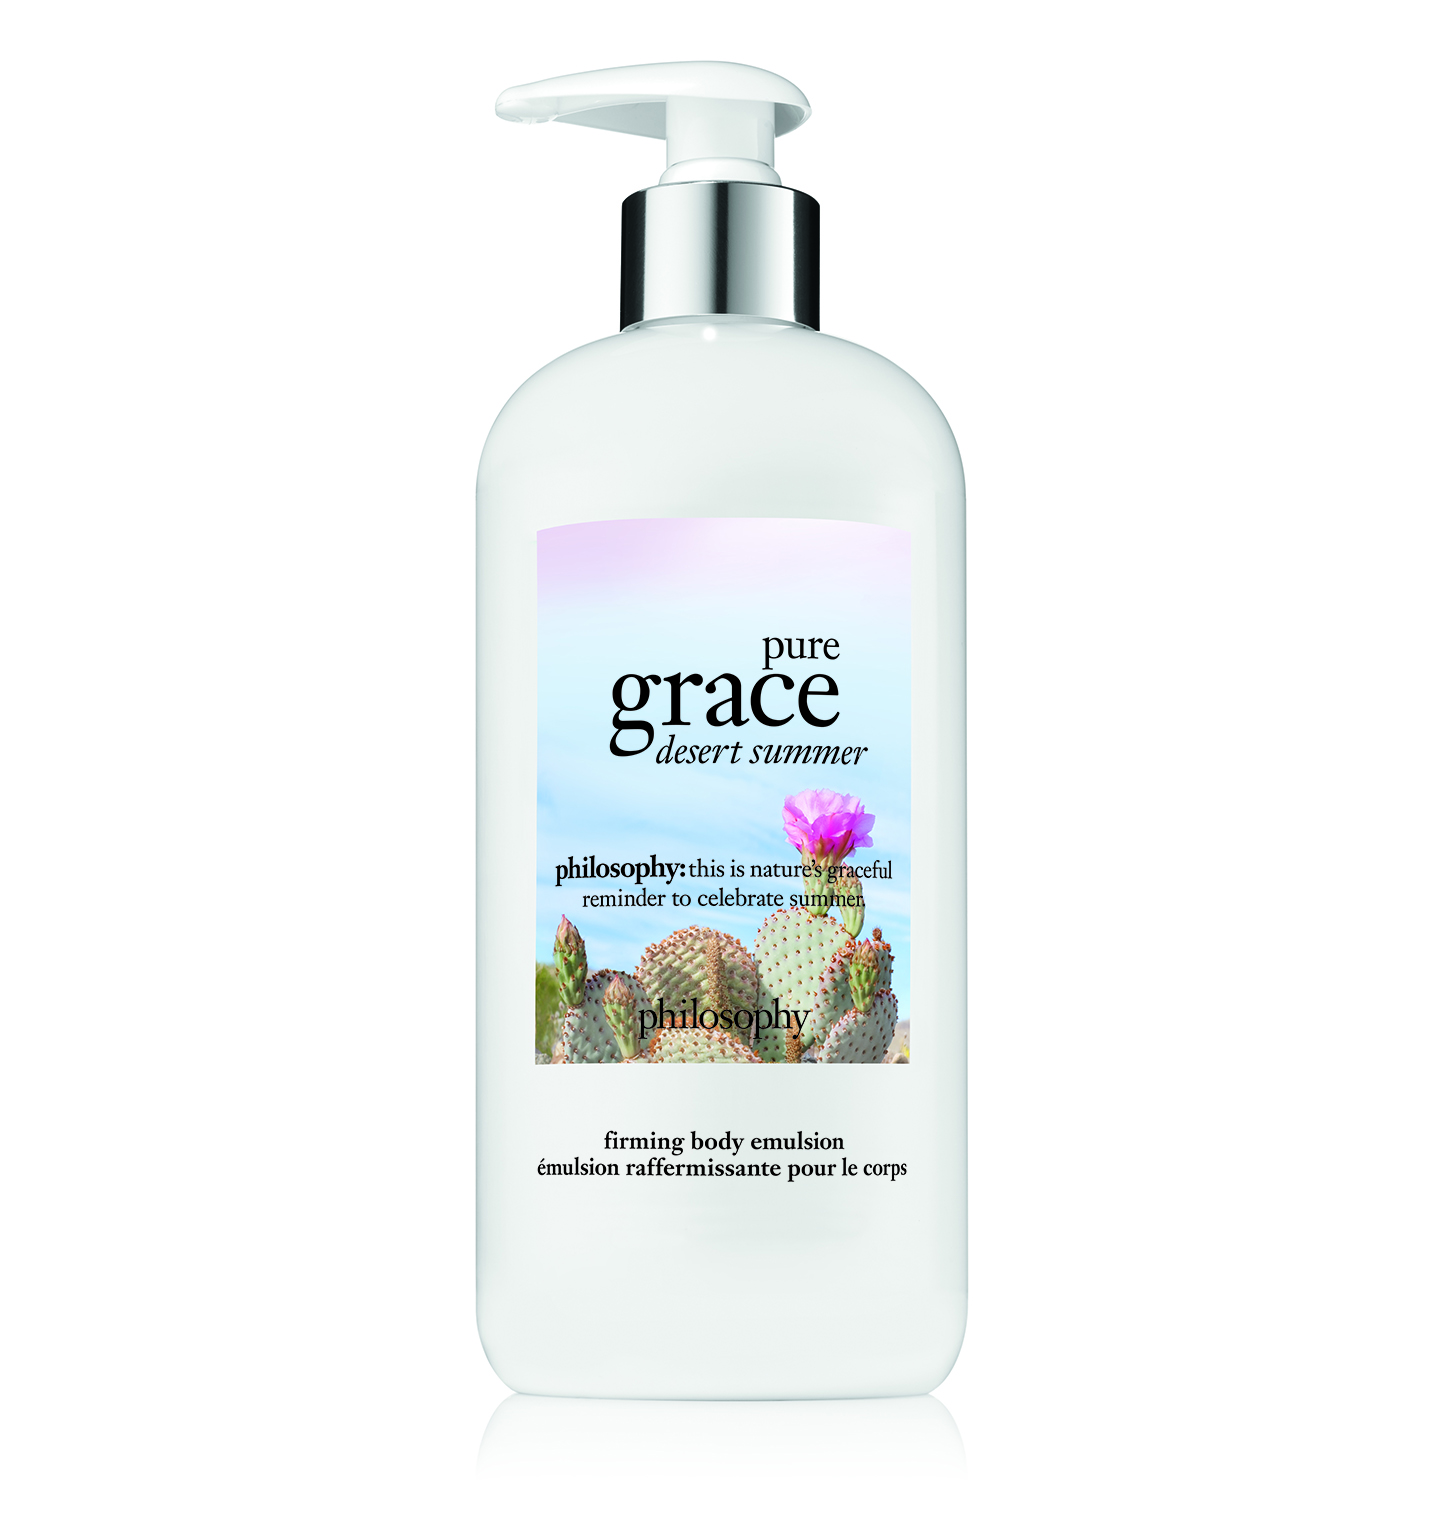 philosophy, pure grace desert summer firming body emulsion